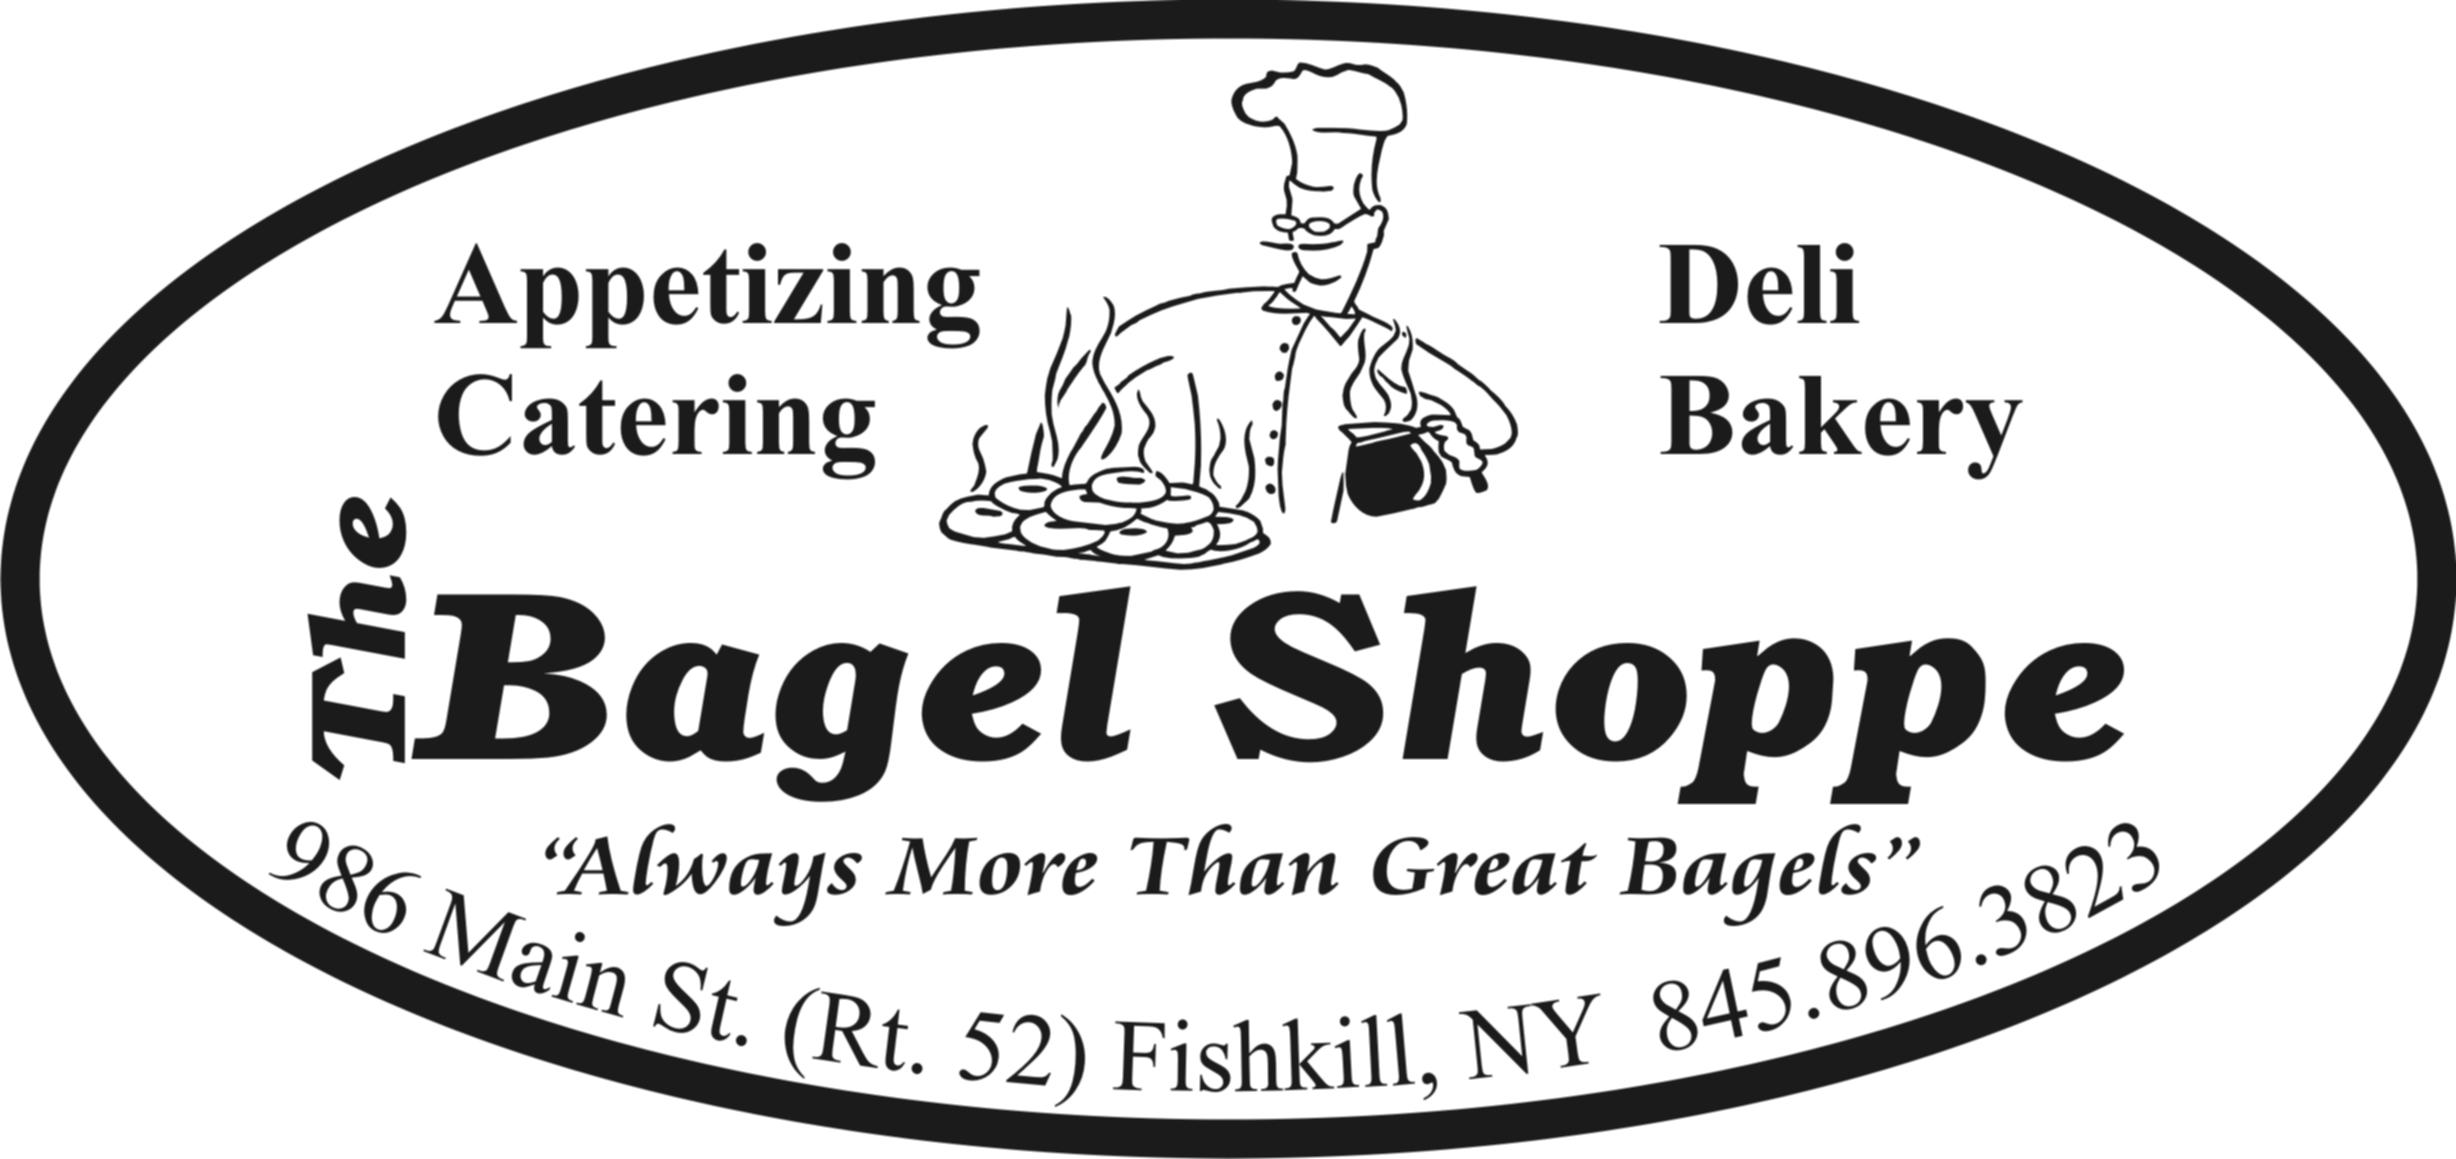 2018 Fishkill PP Joe's Bagel shoppe